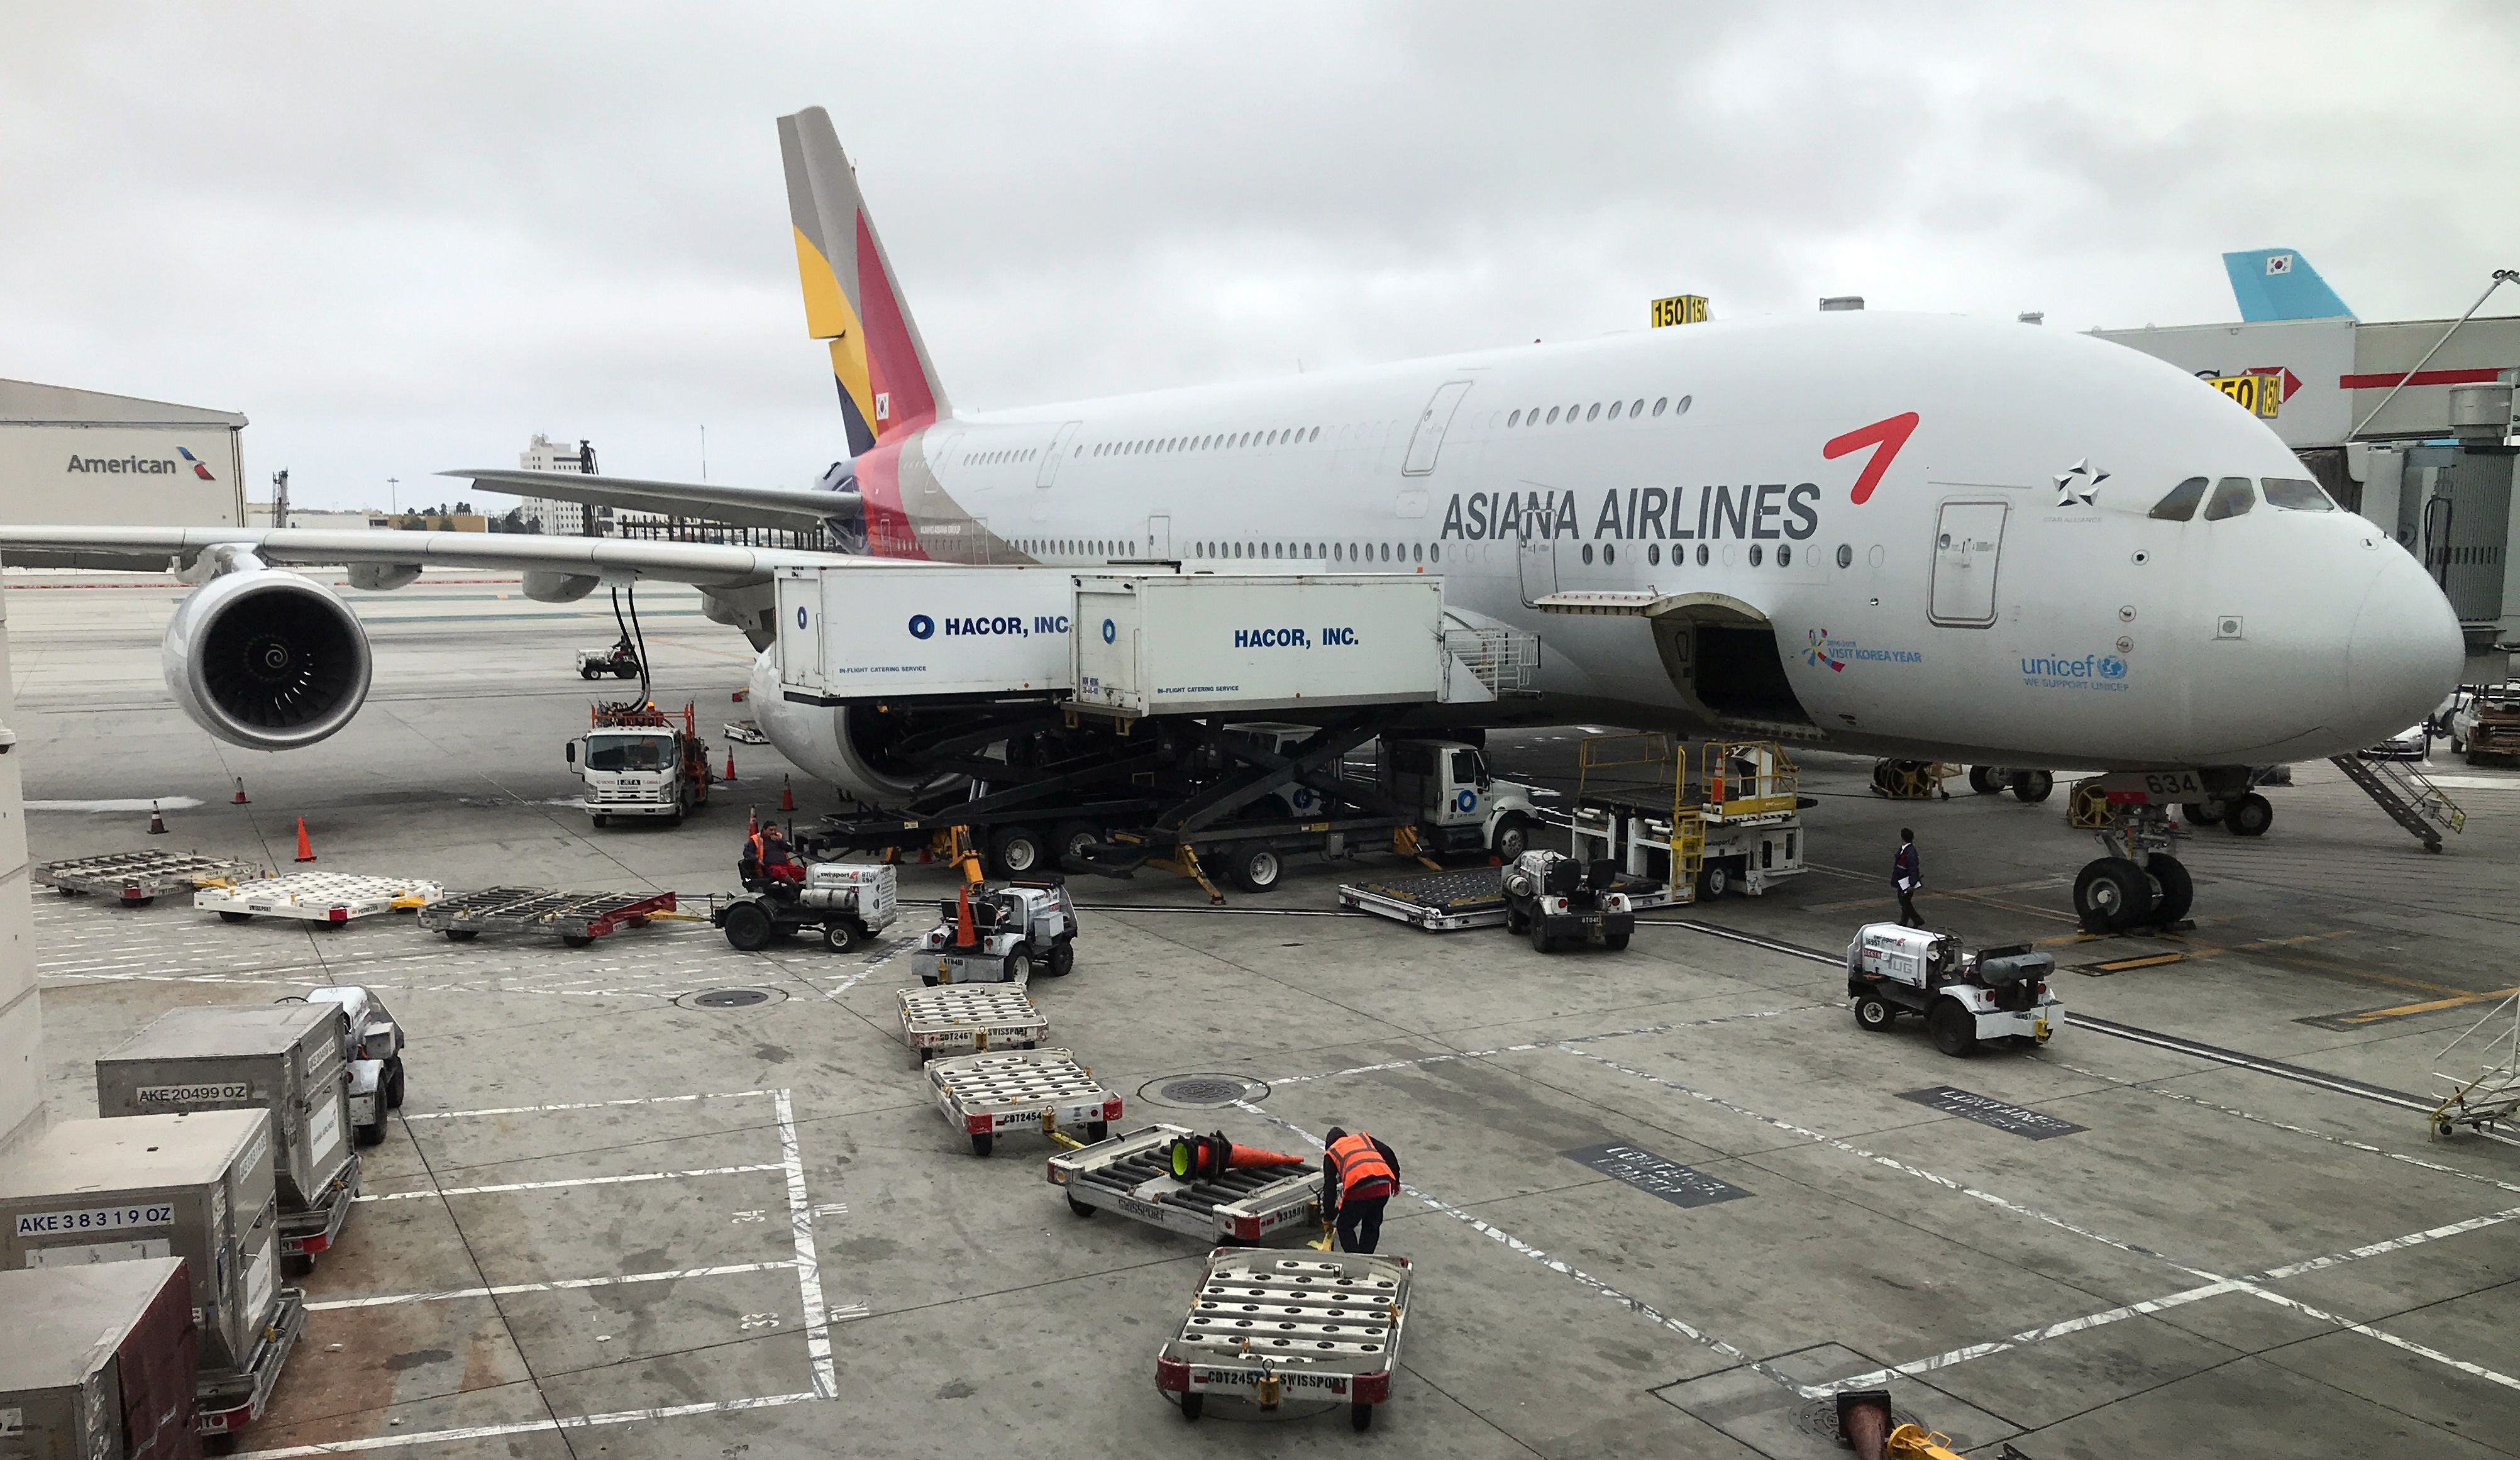 An Asiana Airlines plane in Los Angeles on May 24, 2018.